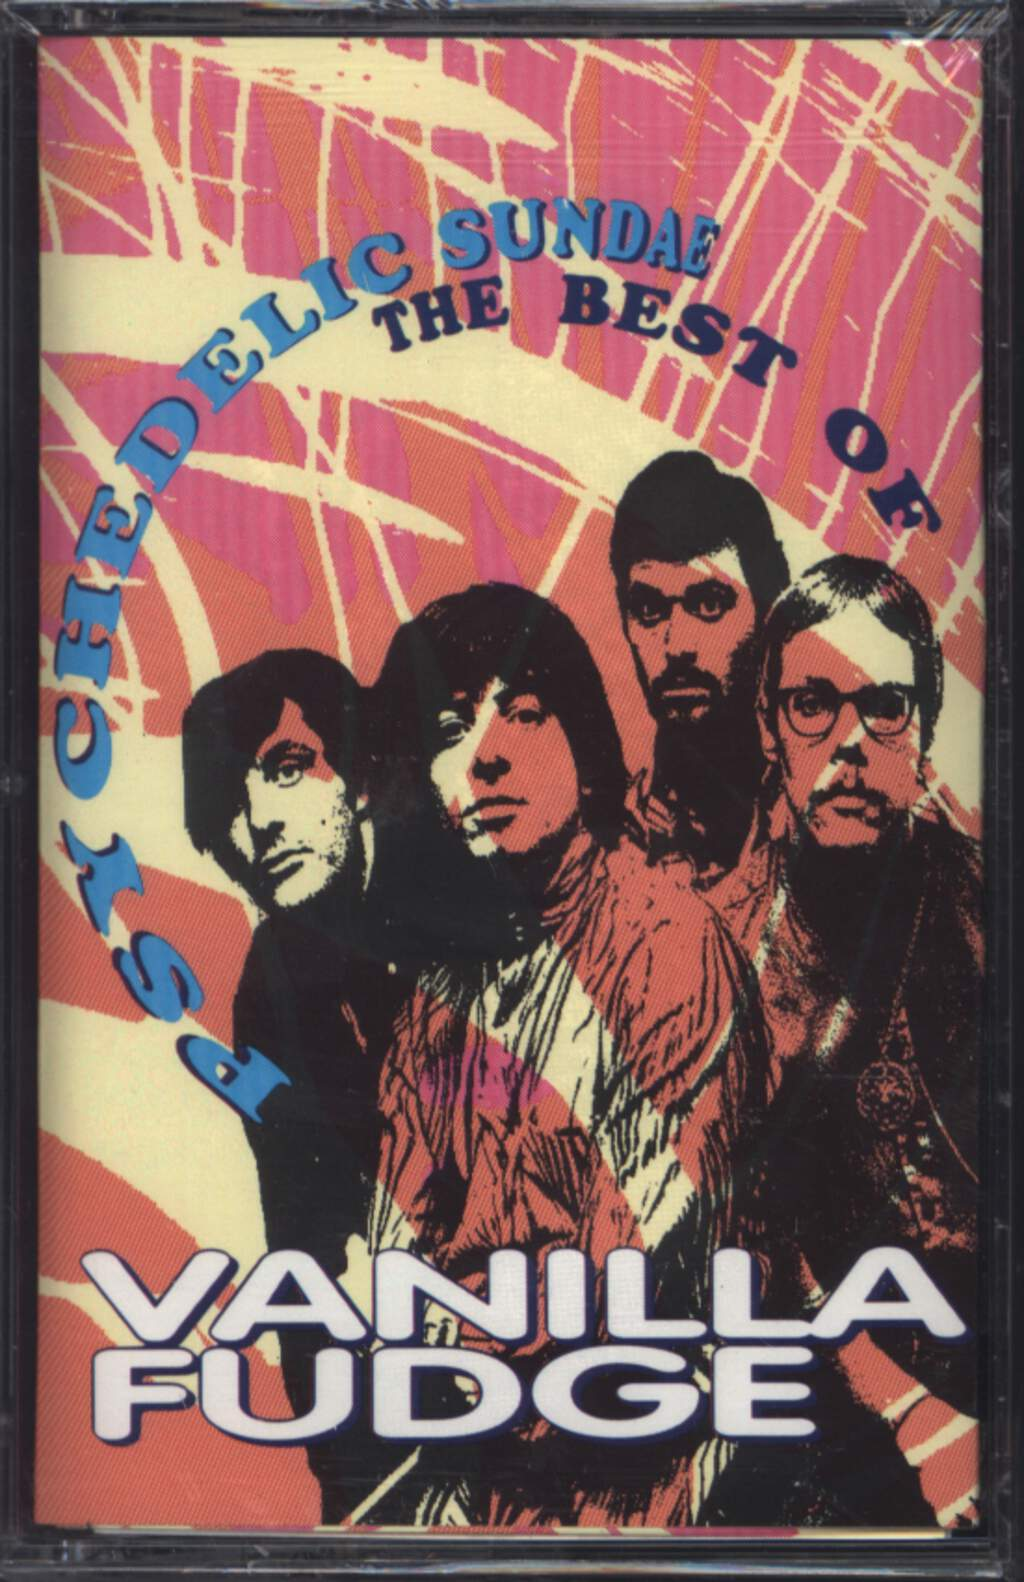 Vanilla Fudge: Psychedelic Sundae: The Best Of, Compact Cassette